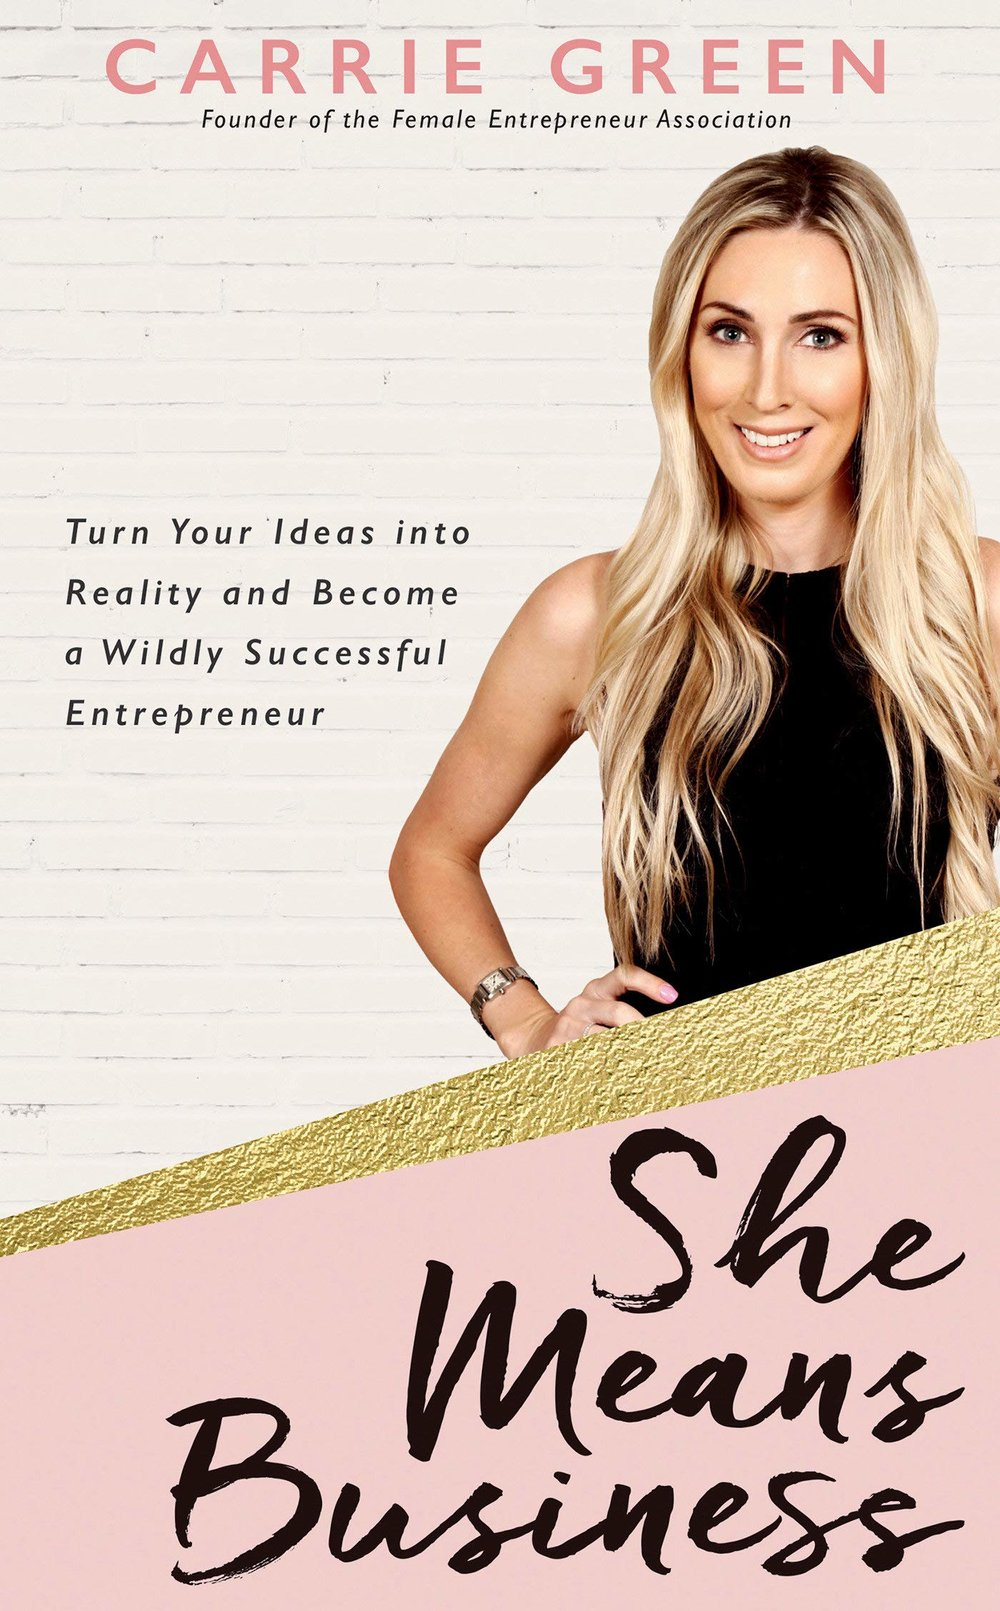 """She Means Business by Carrie Green - First on the hitlist is She Means Business by Carrie Green, Carries the founder of the Female Entrepreneur Association, an online platform helping women of all ages turn their fantastic ideas and dreams into """"wildly successful businesses"""" This book is for all those entrepreneurs out there, those who already may have a business and those who one day hope to have one!"""